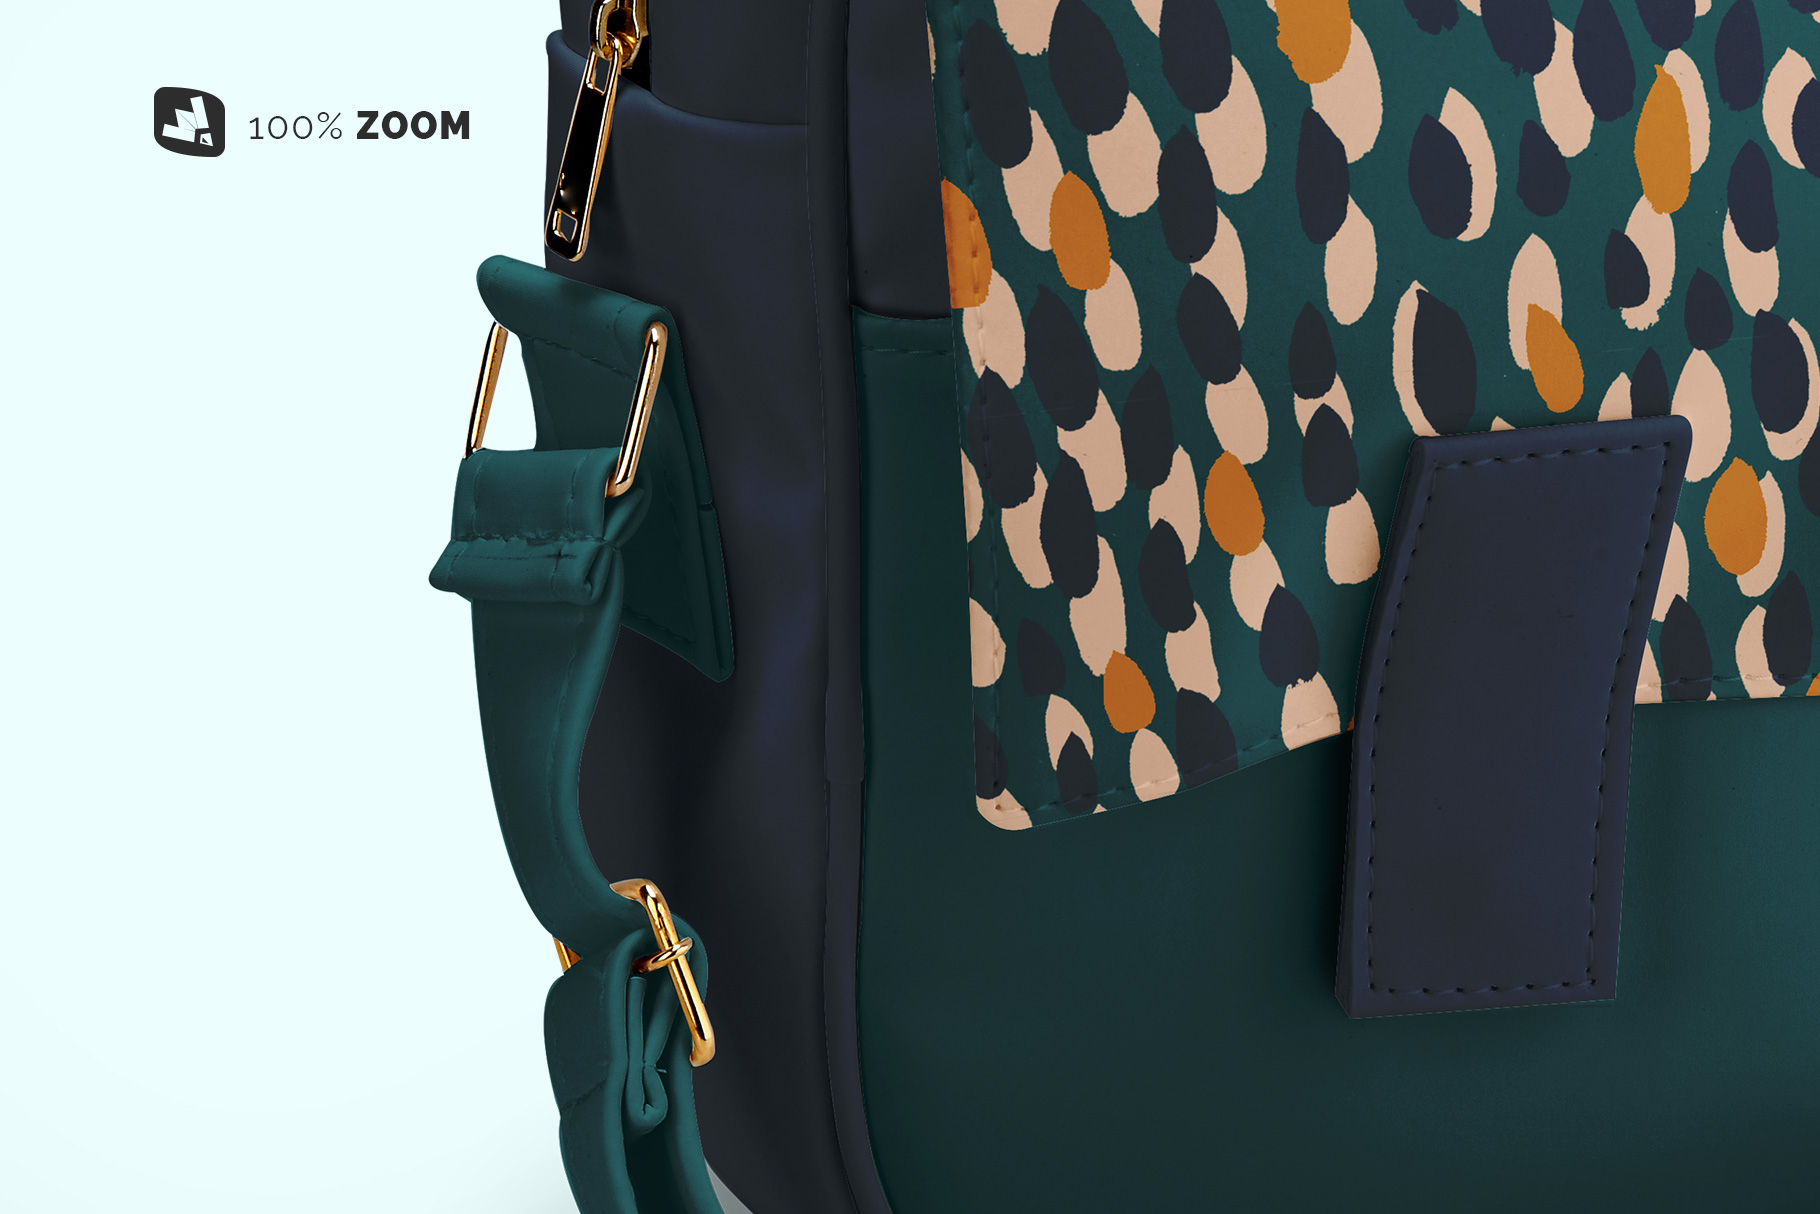 zoomed in image of the leather messenger bag mockup